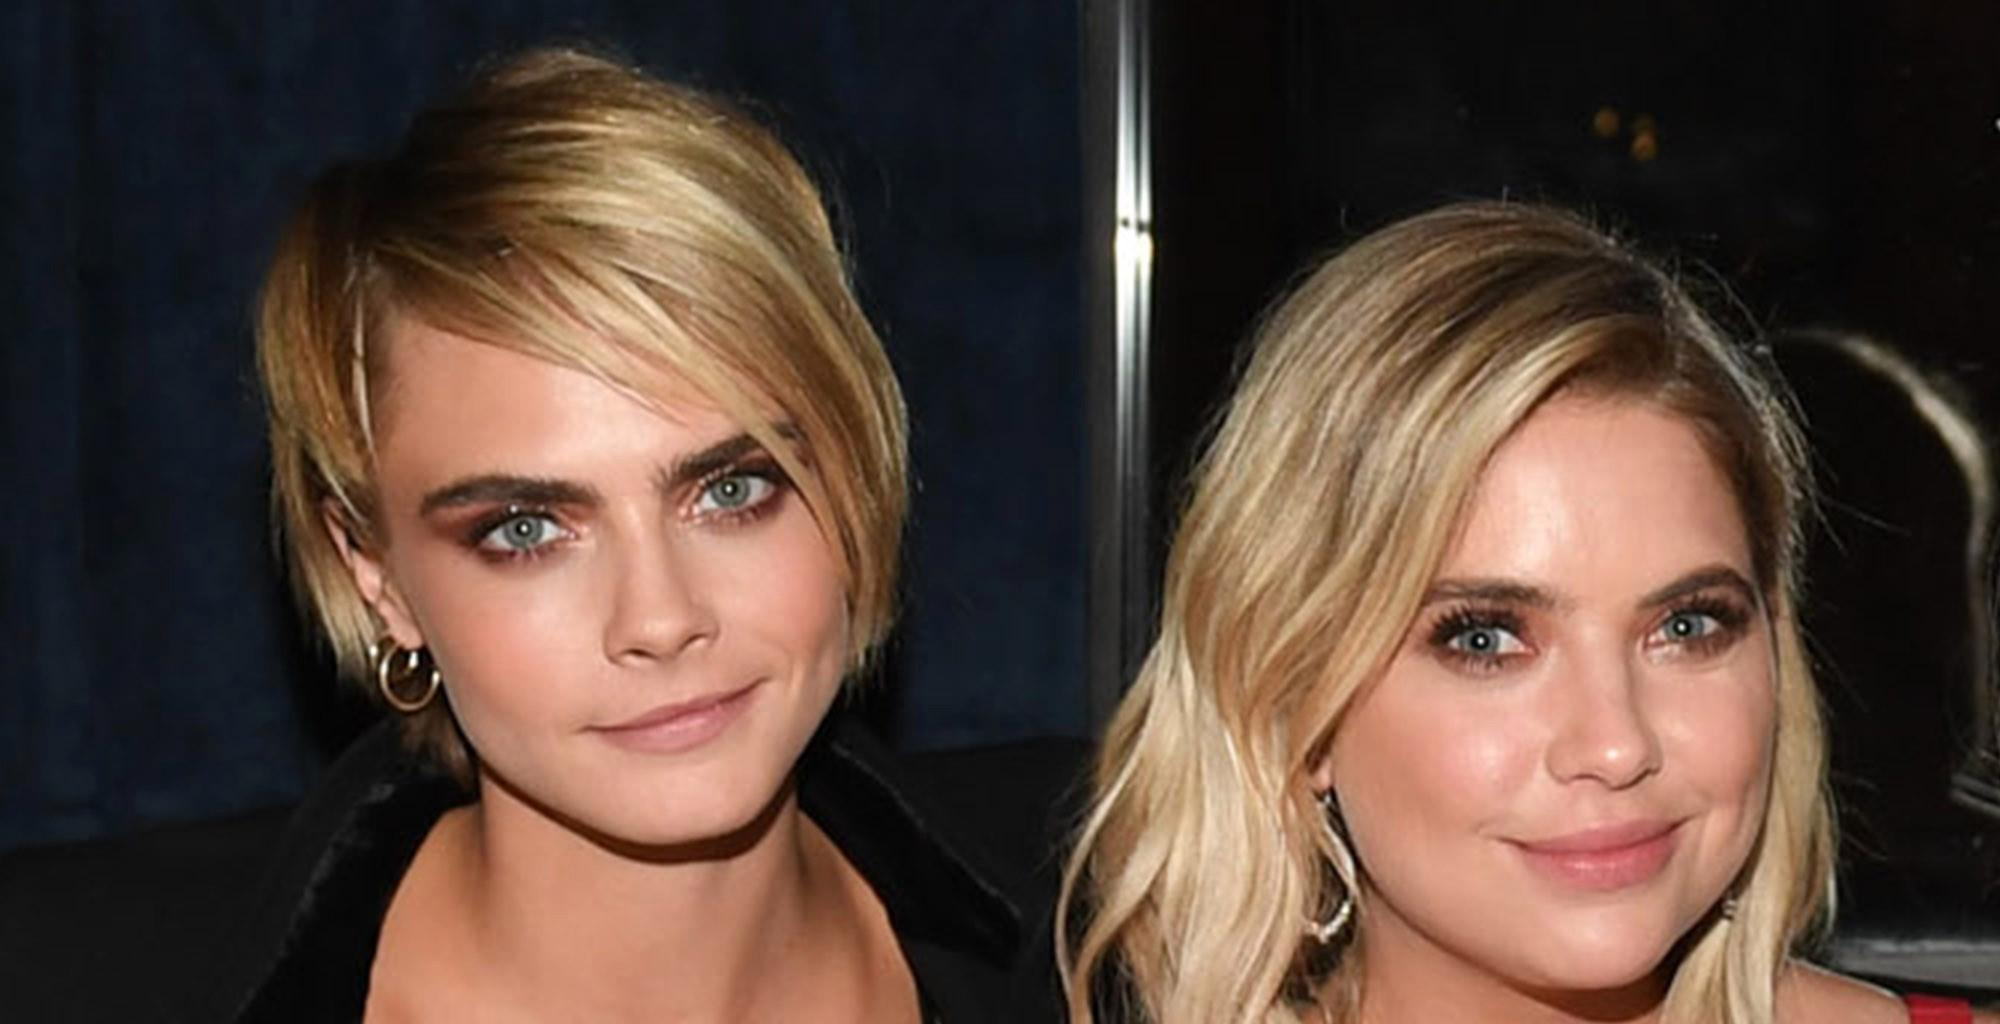 Cara Delevingne And Ashley Benson Reportedly Marry In Las Vegas!